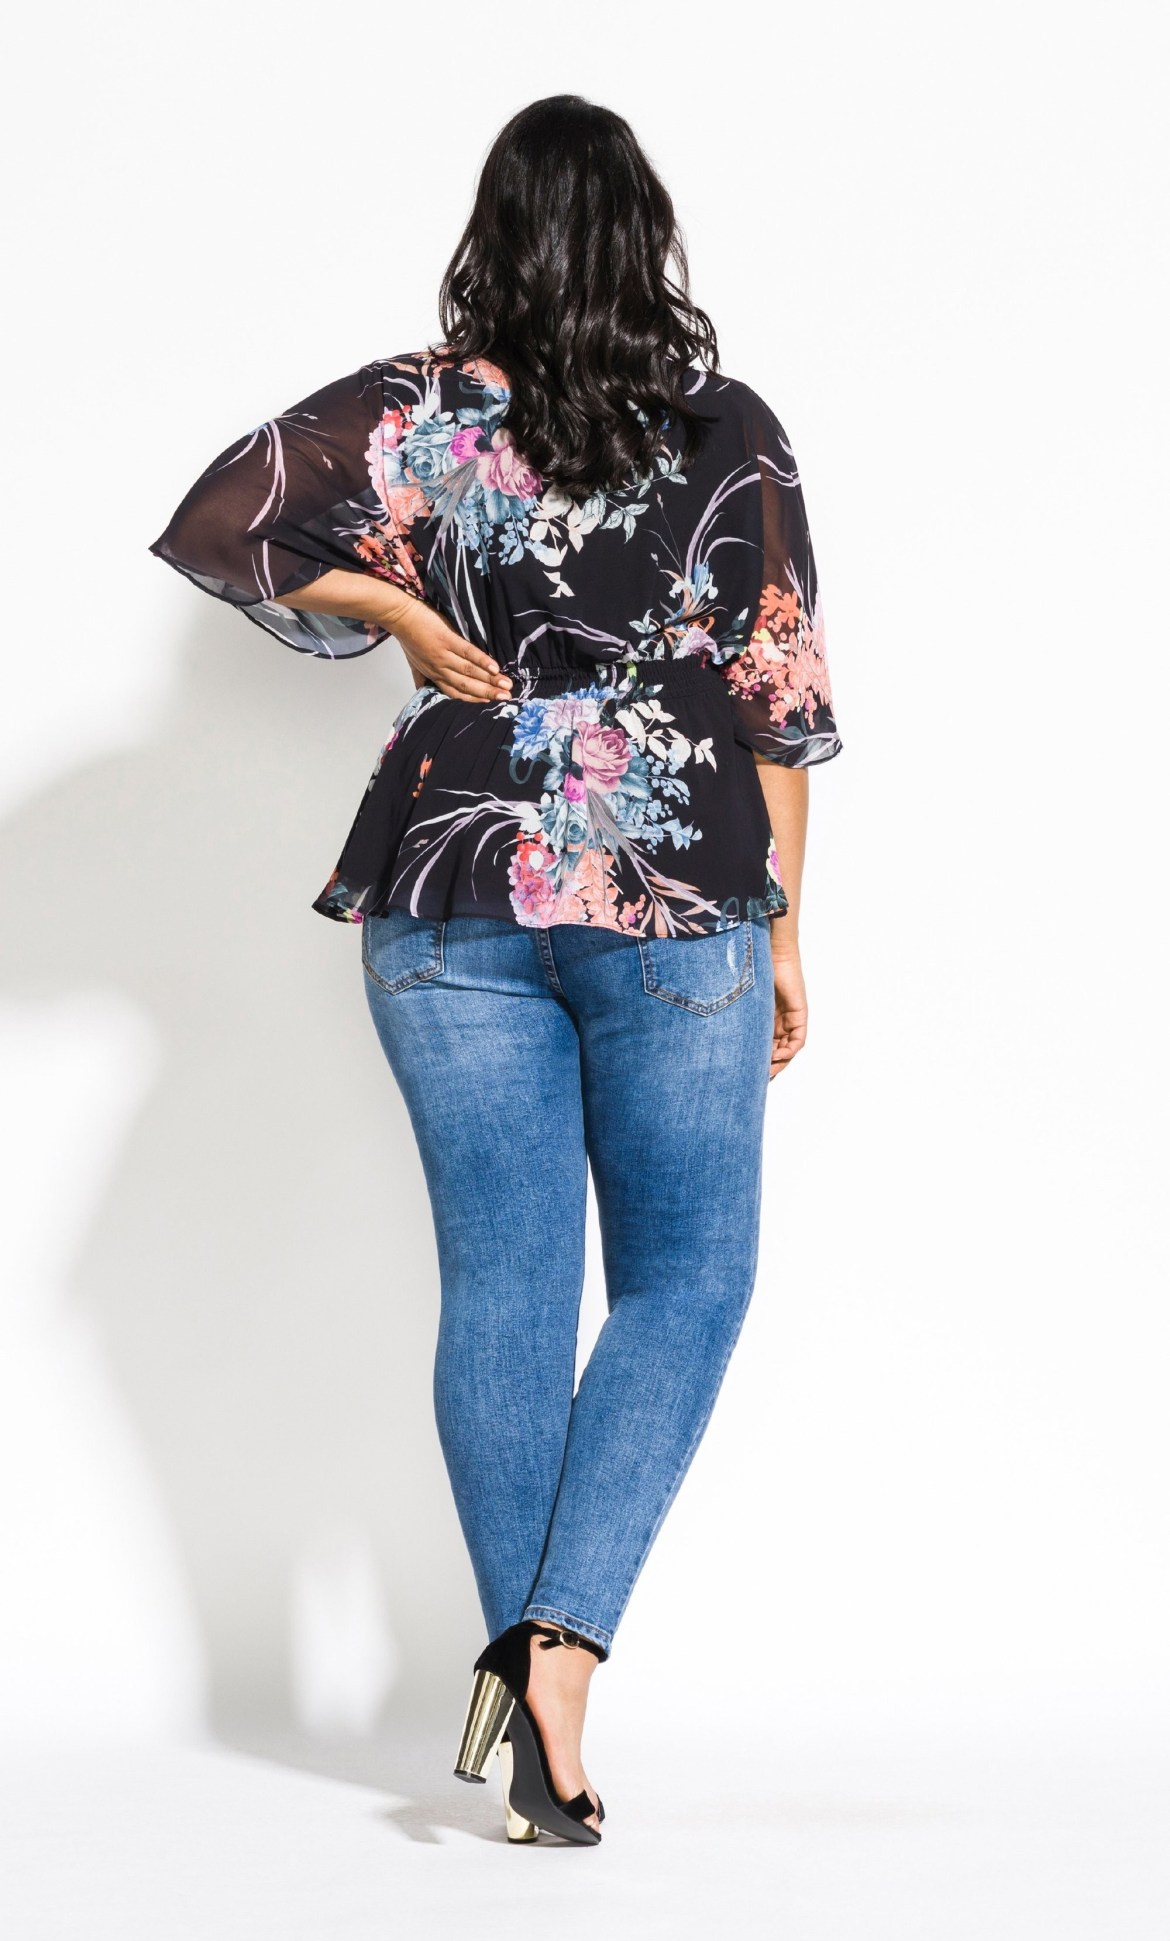 Flourished Top - black 8